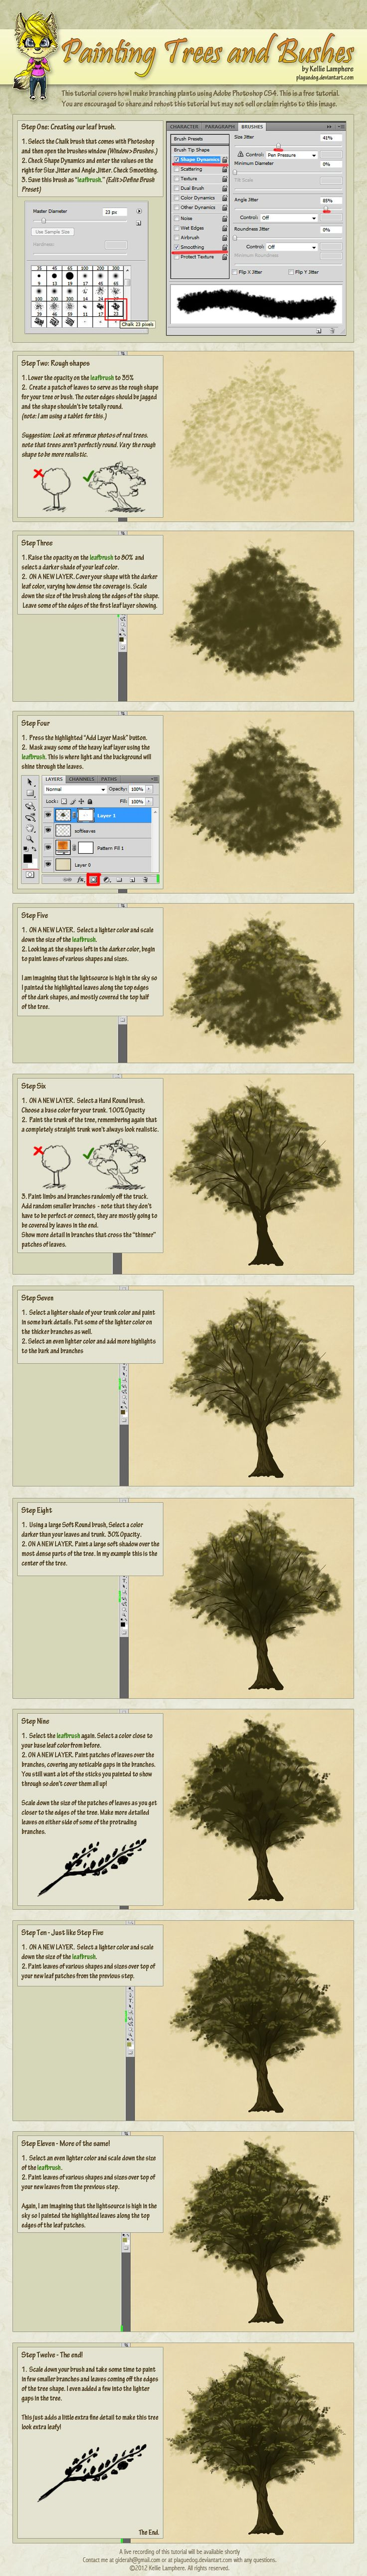 How to Digitally Paint Trees and Bushes Tutorial by Plaguedog.deviantart.com on @deviantART